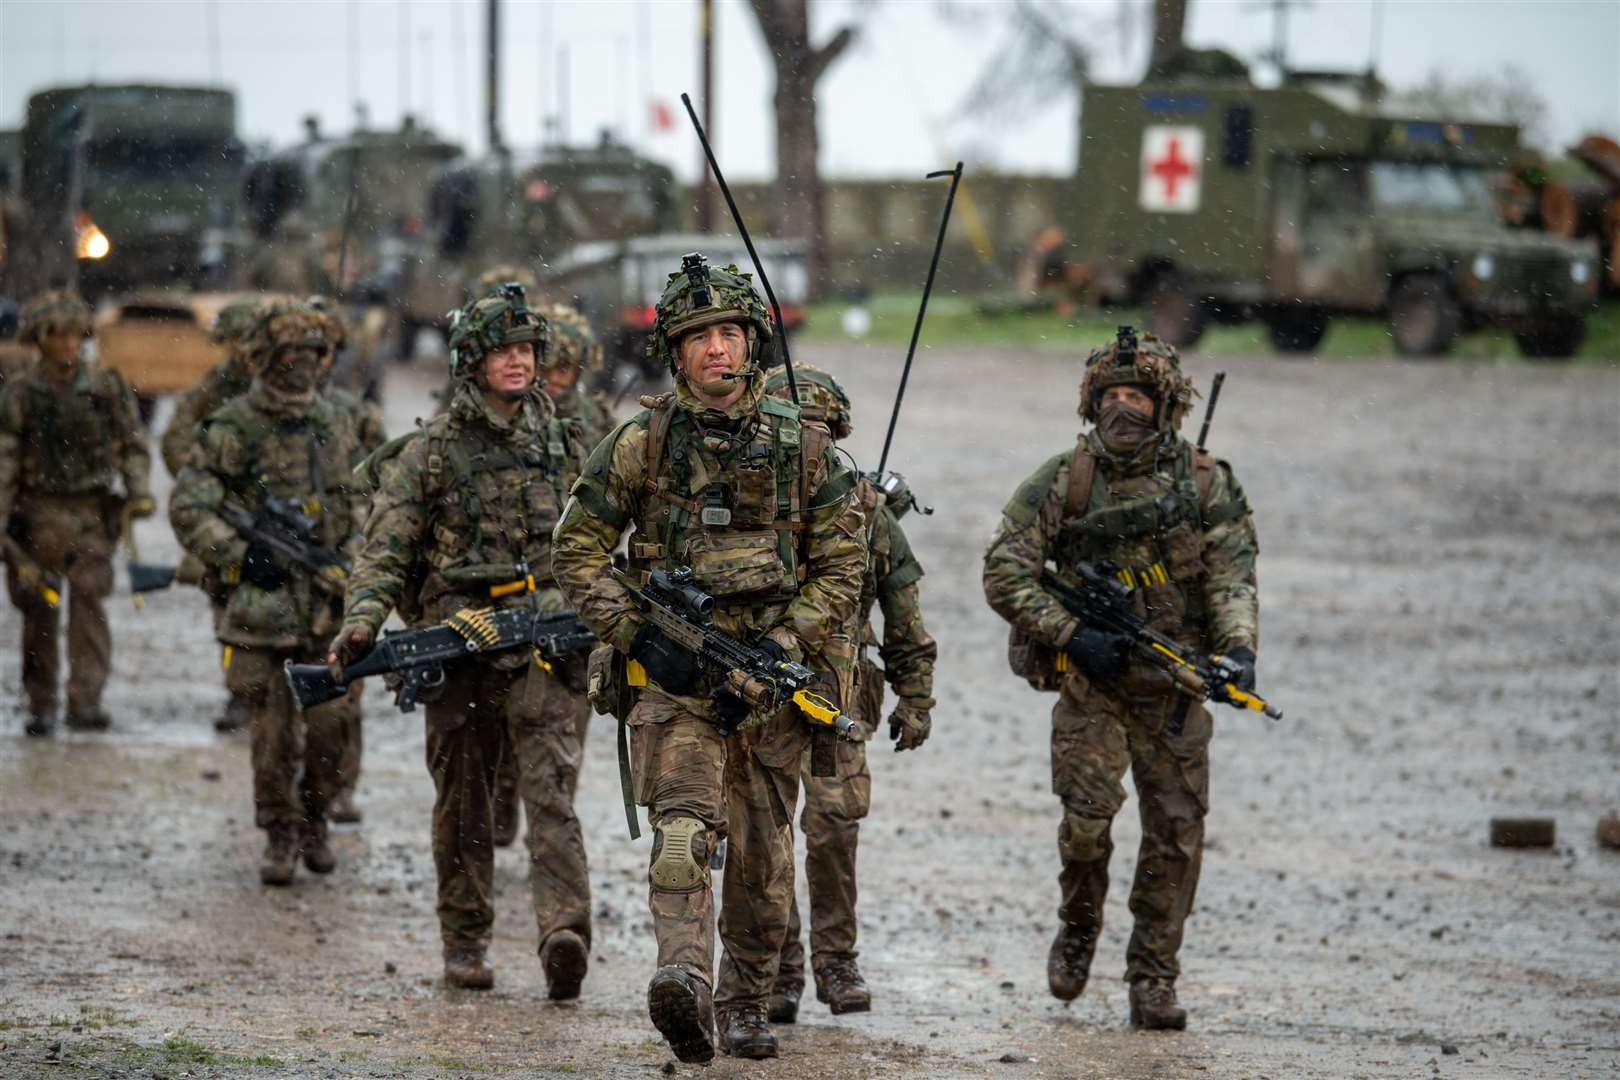 Soldiers from the 2rd Battalion, The Royal Anglian Regiment - Steve Hadaway's battalion - coming back from a training exercise on Salisbury plain.